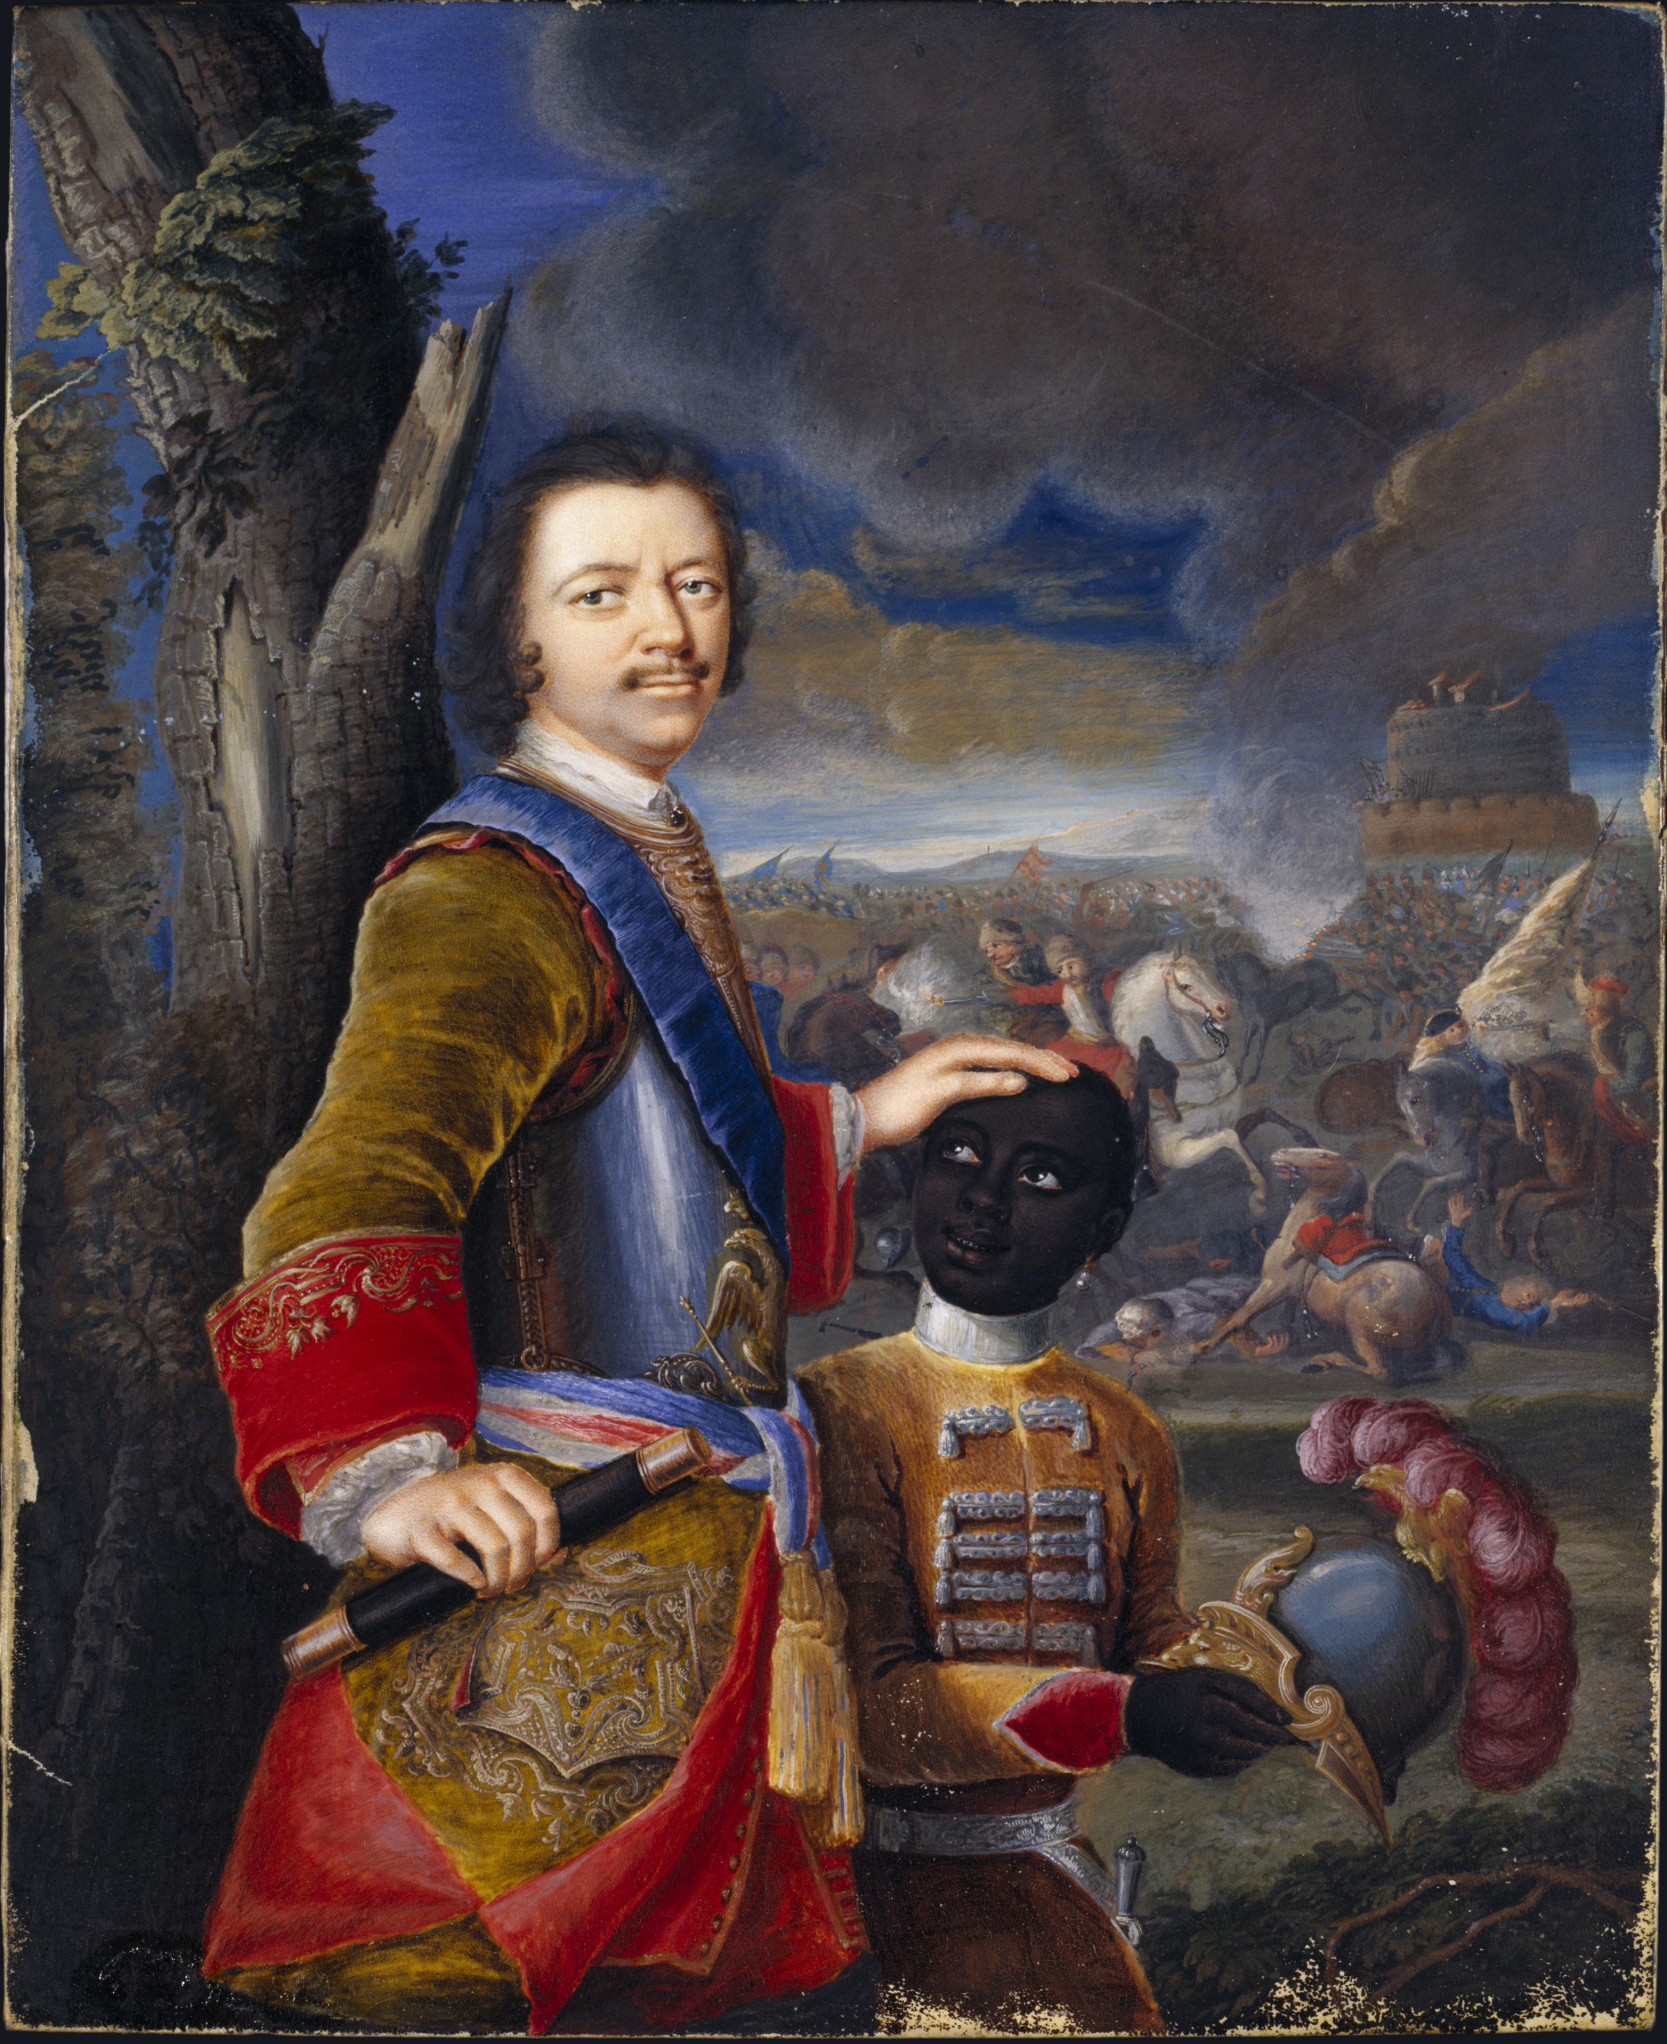 File:Peter the Great, Tsar of Russia.jpg - Wikimedia Commons